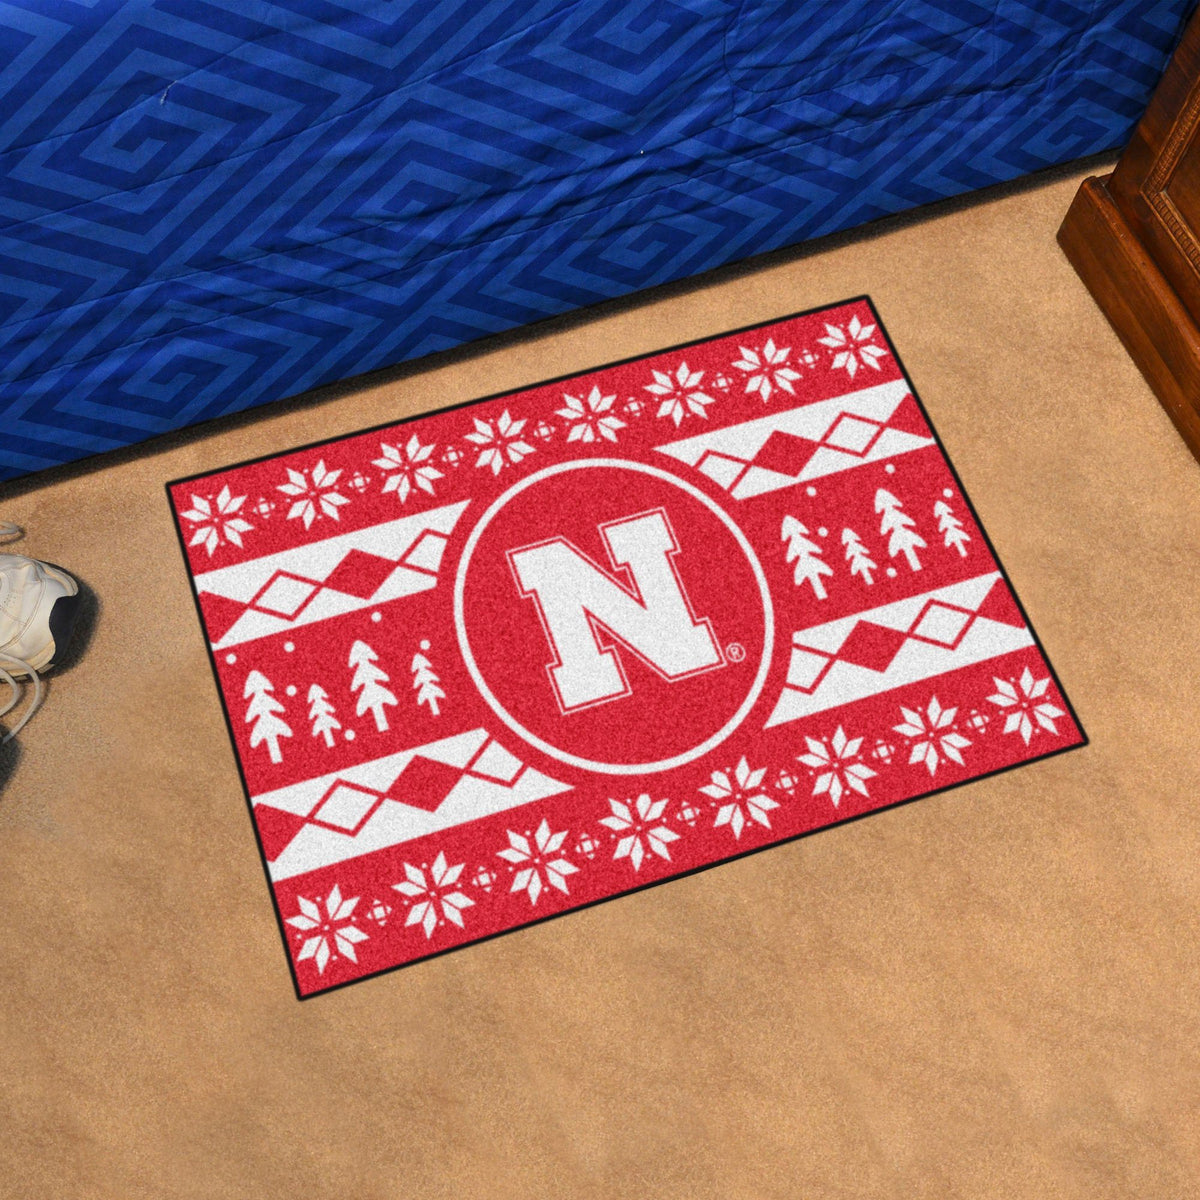 Collegiate - Holiday Sweater Starter Mat Collegiate Mats, Rectangular Mats, Holiday Sweater Starter Mat, Collegiate, Home Fan Mats Nebraska